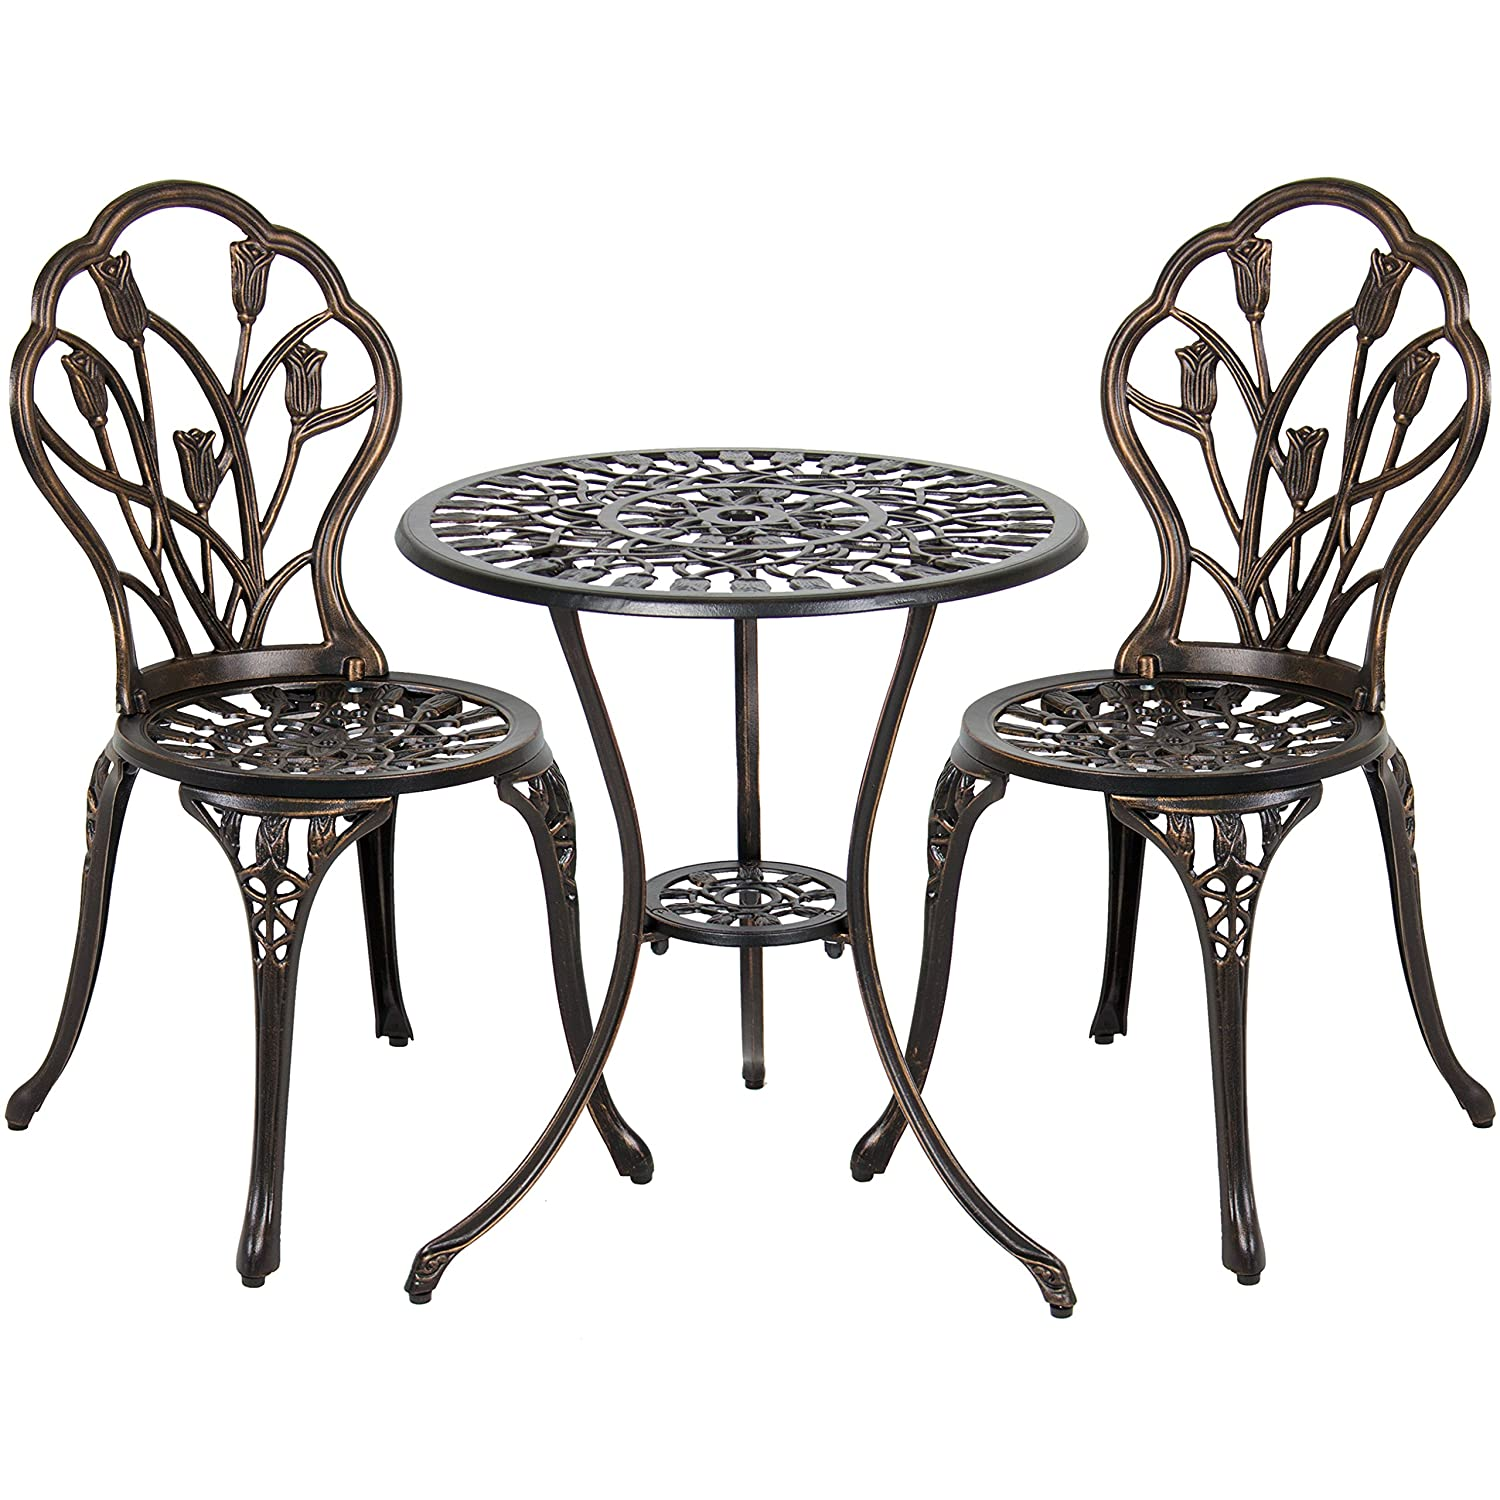 Amazoncom  Best Choice Products Outdoor Patio Furniture Tulip - Bistro table set